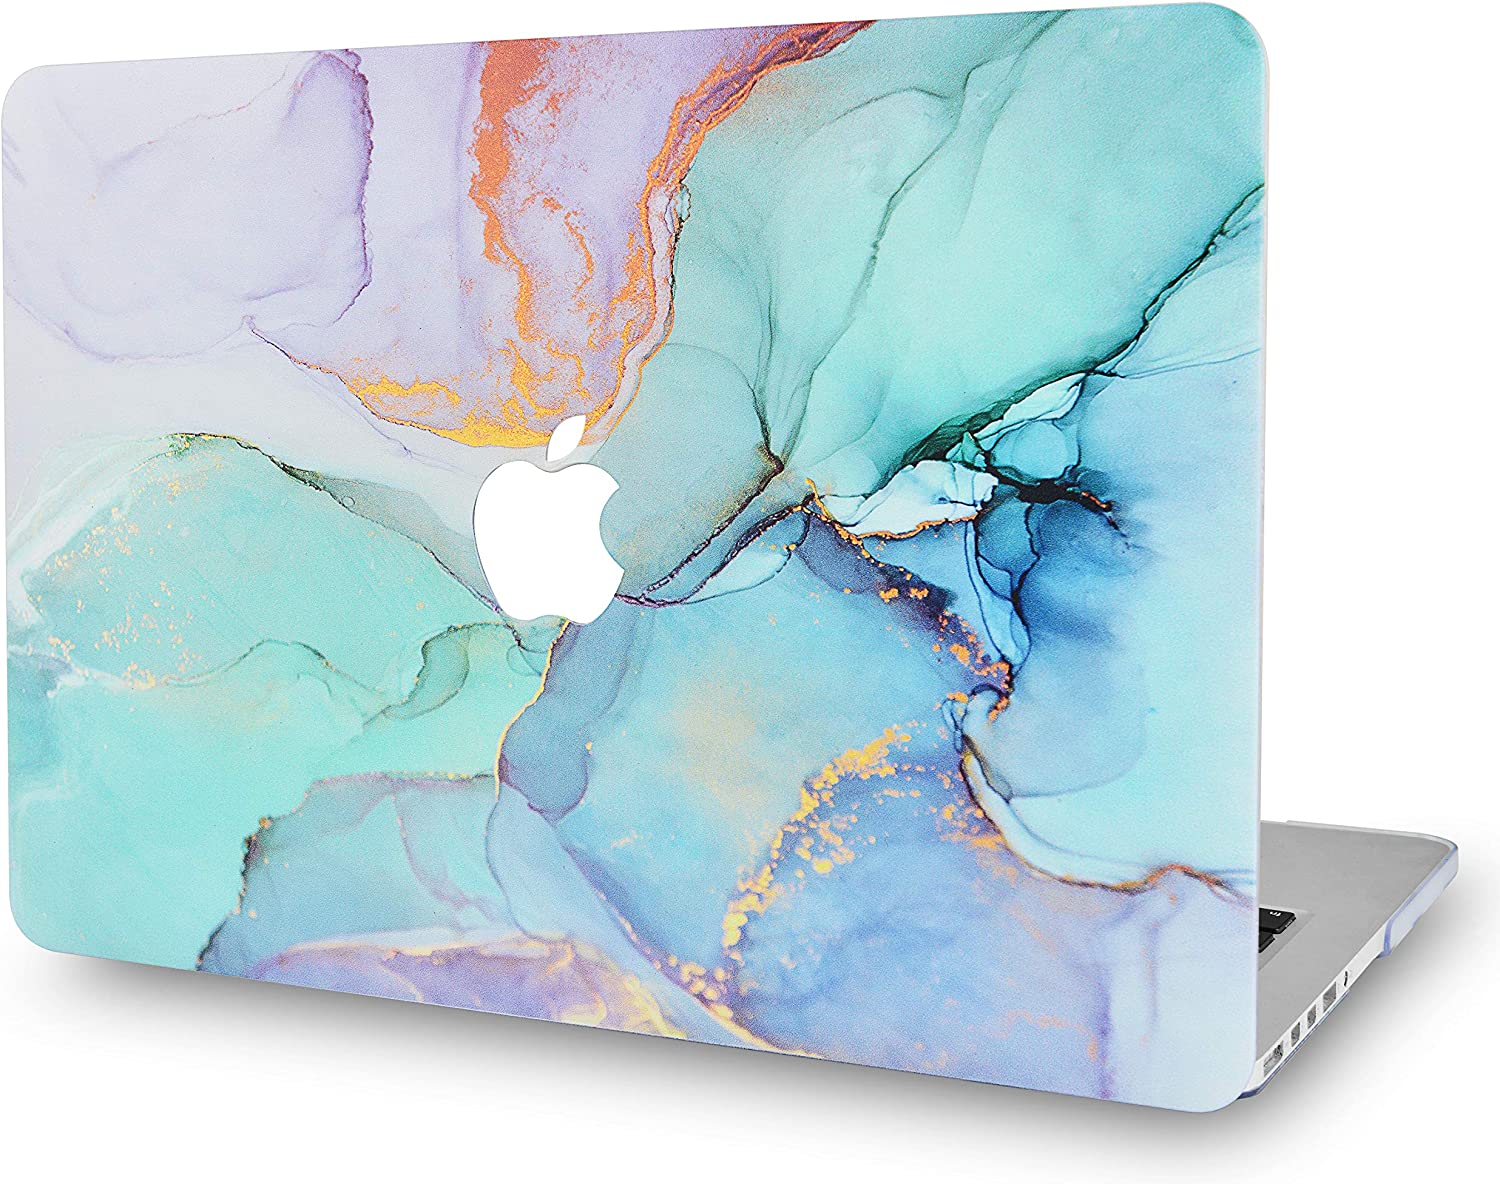 LuvCaseLaptopCaseforMacBookAir 13 Inch A1466 / A1369 (No Touch ID)RubberizedPlasticHardShellCover (Teal Marble)